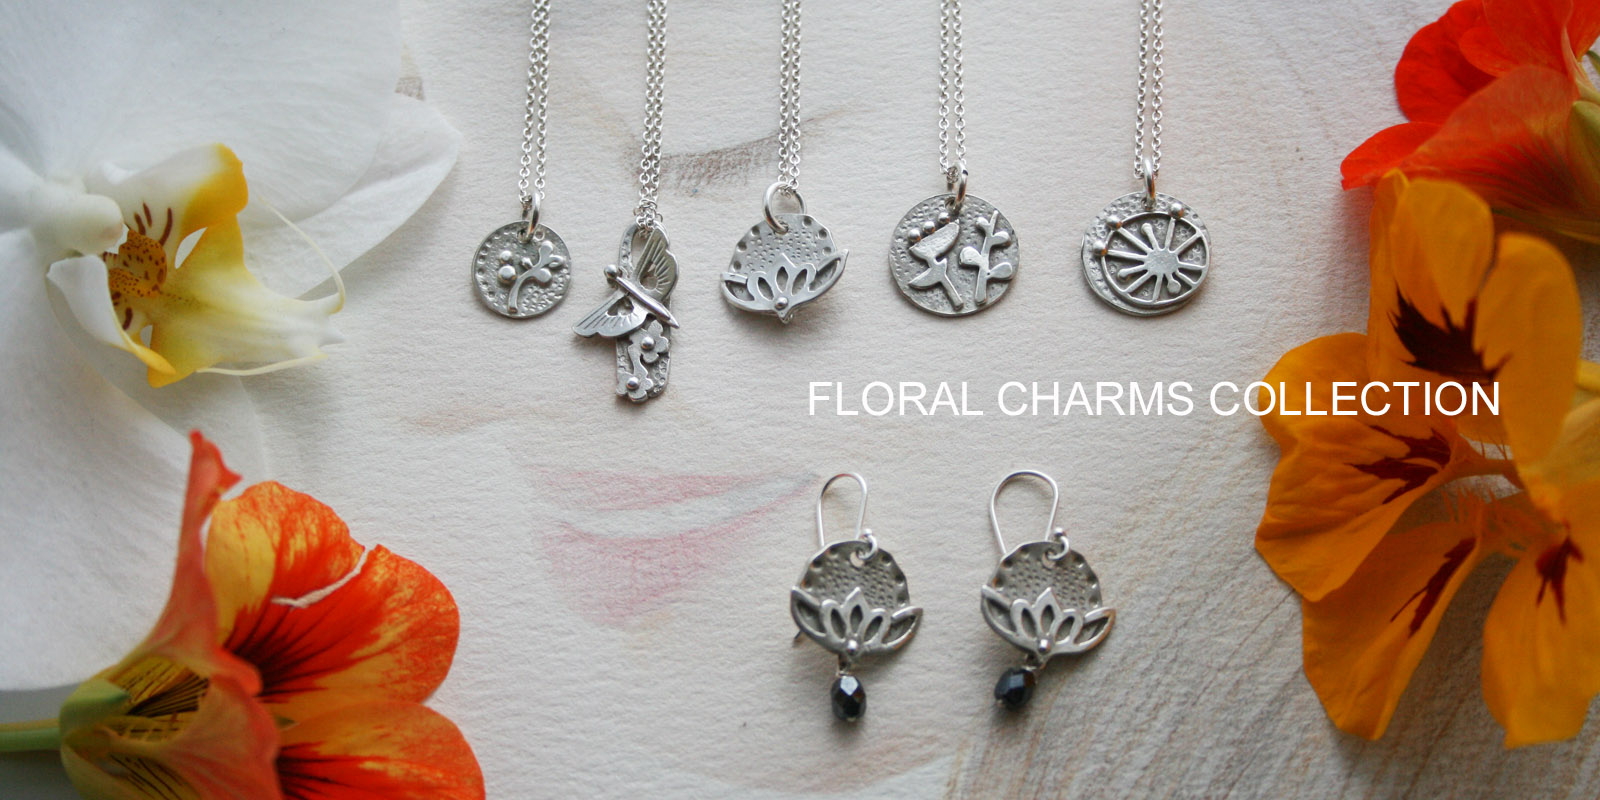 Floral Charms Collection